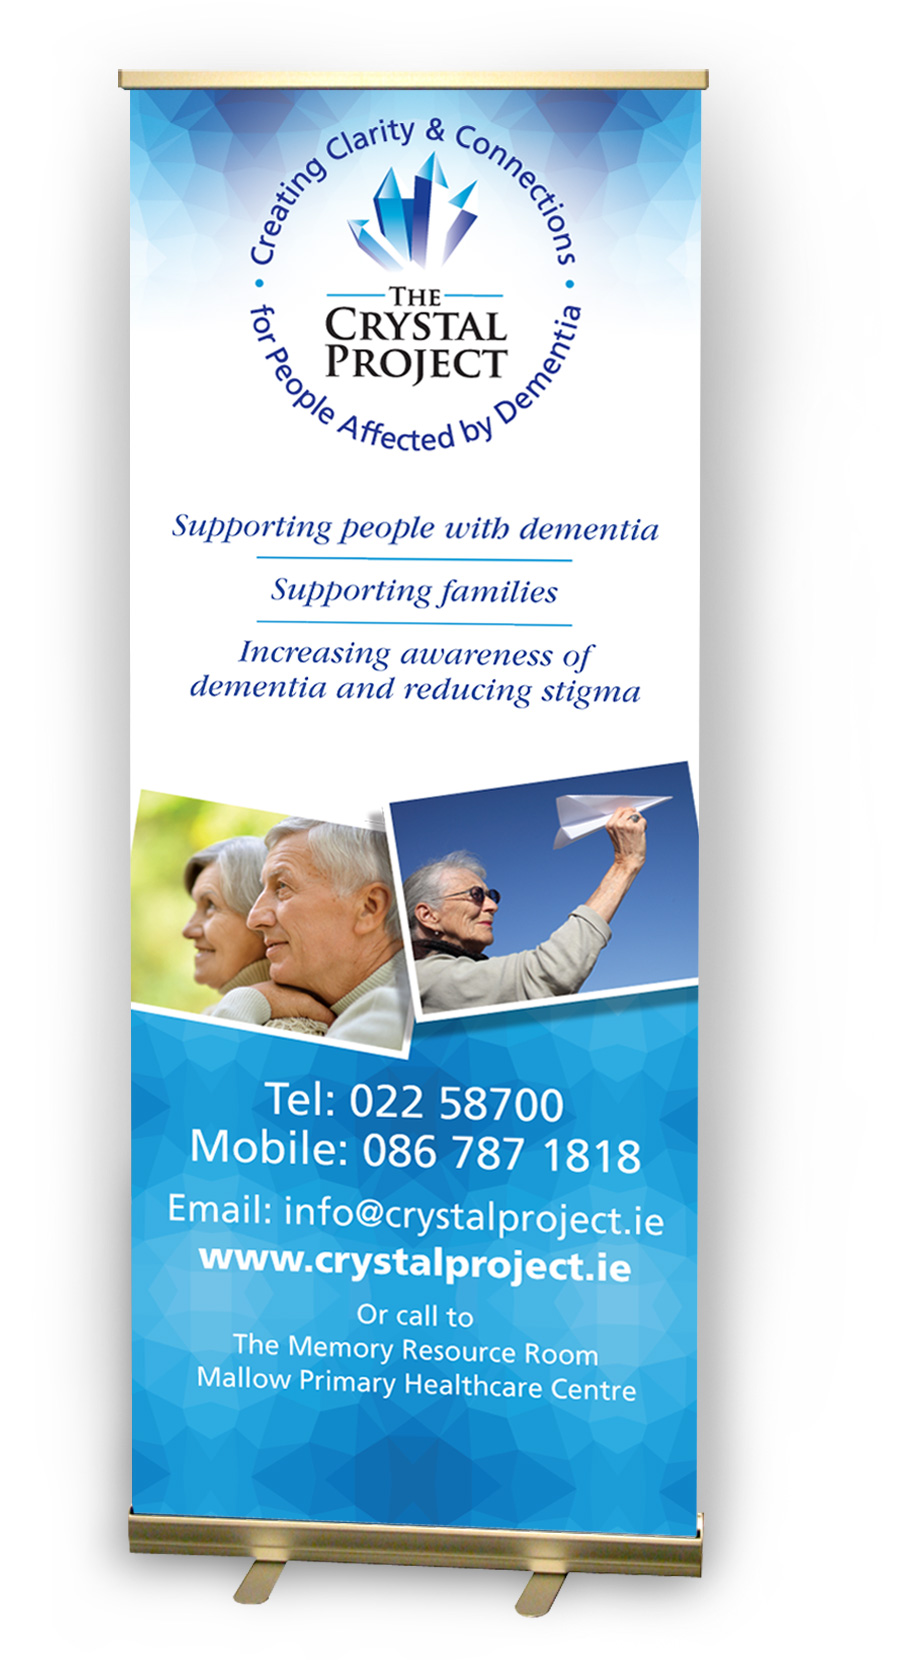 The Crystal Project Pull-Up Banner Design